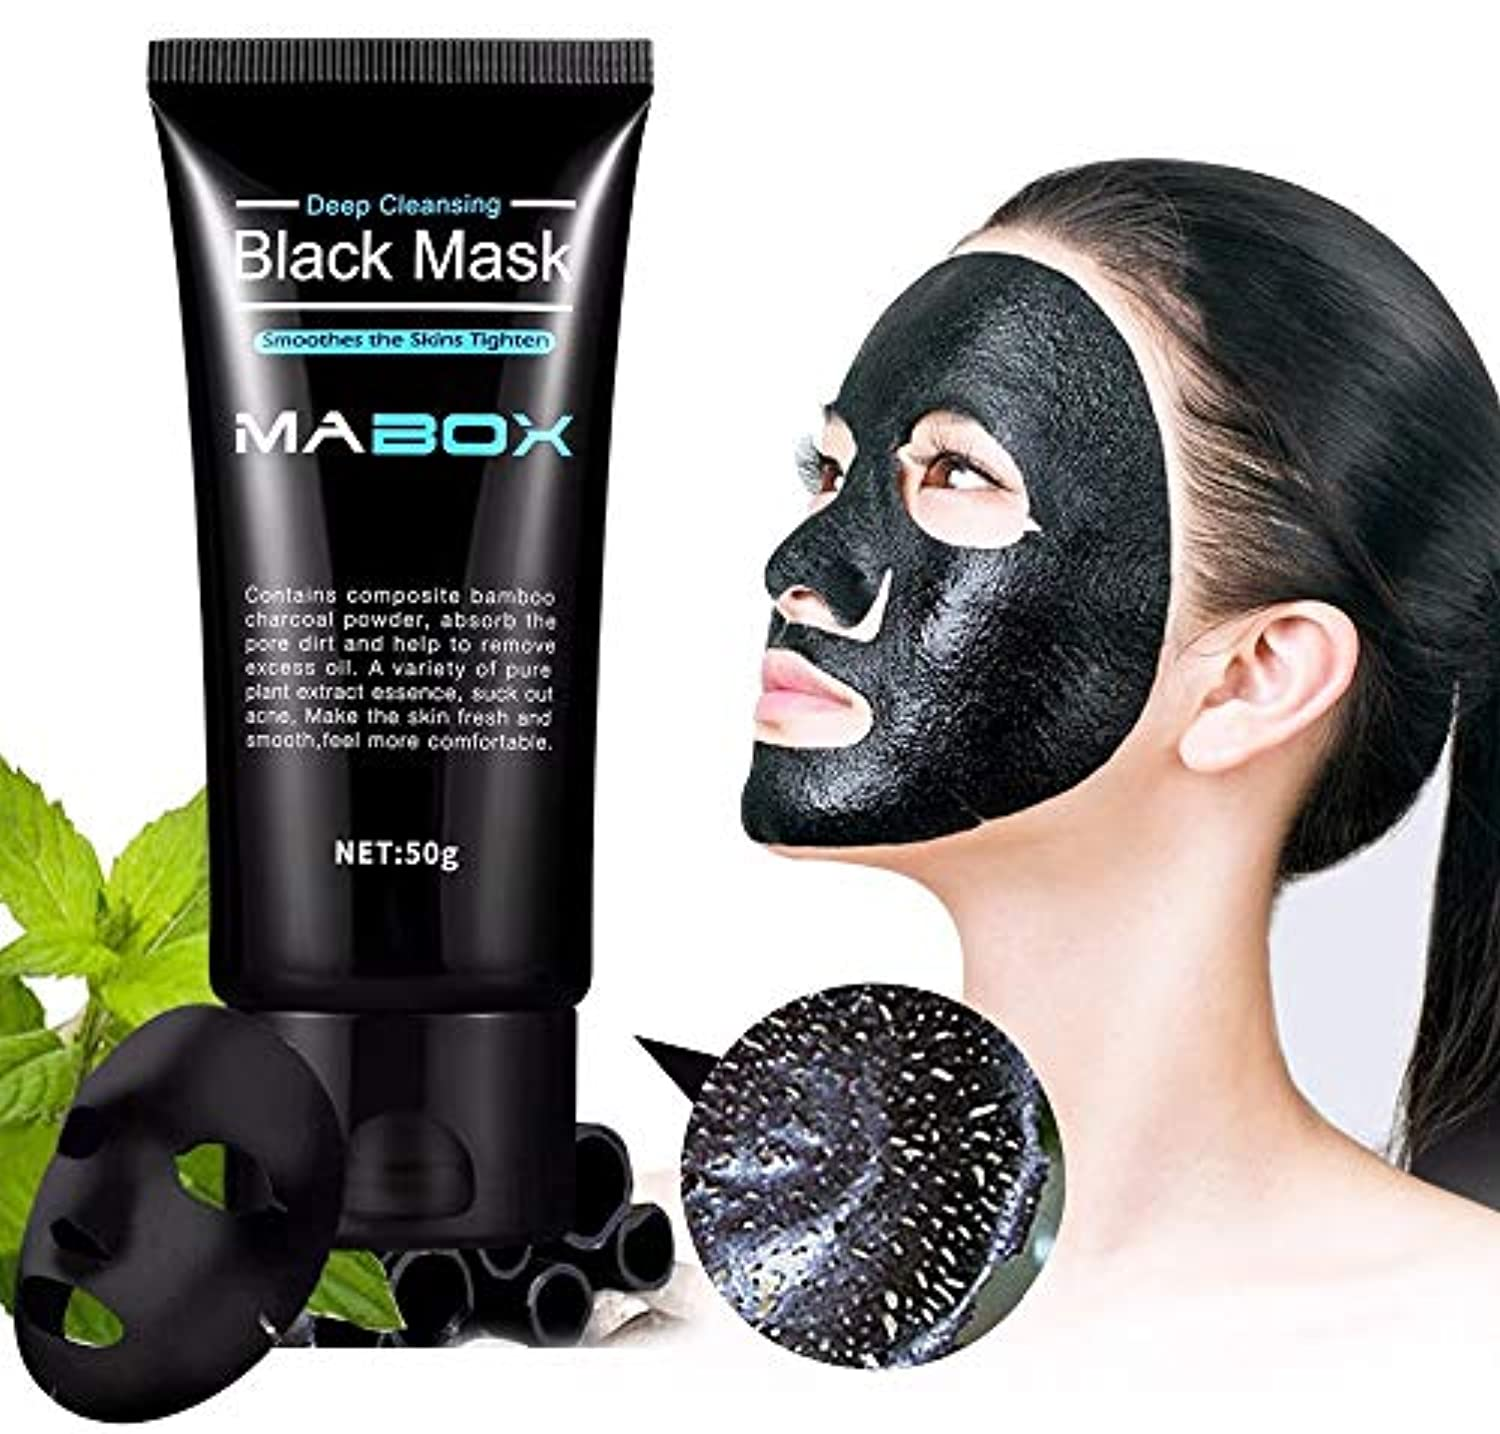 Mabox Black Mask Peel Off Bamboo Charcoal Purifying Blackhead Remover Mask Deep Cleansing for AcneScars Blemishes...